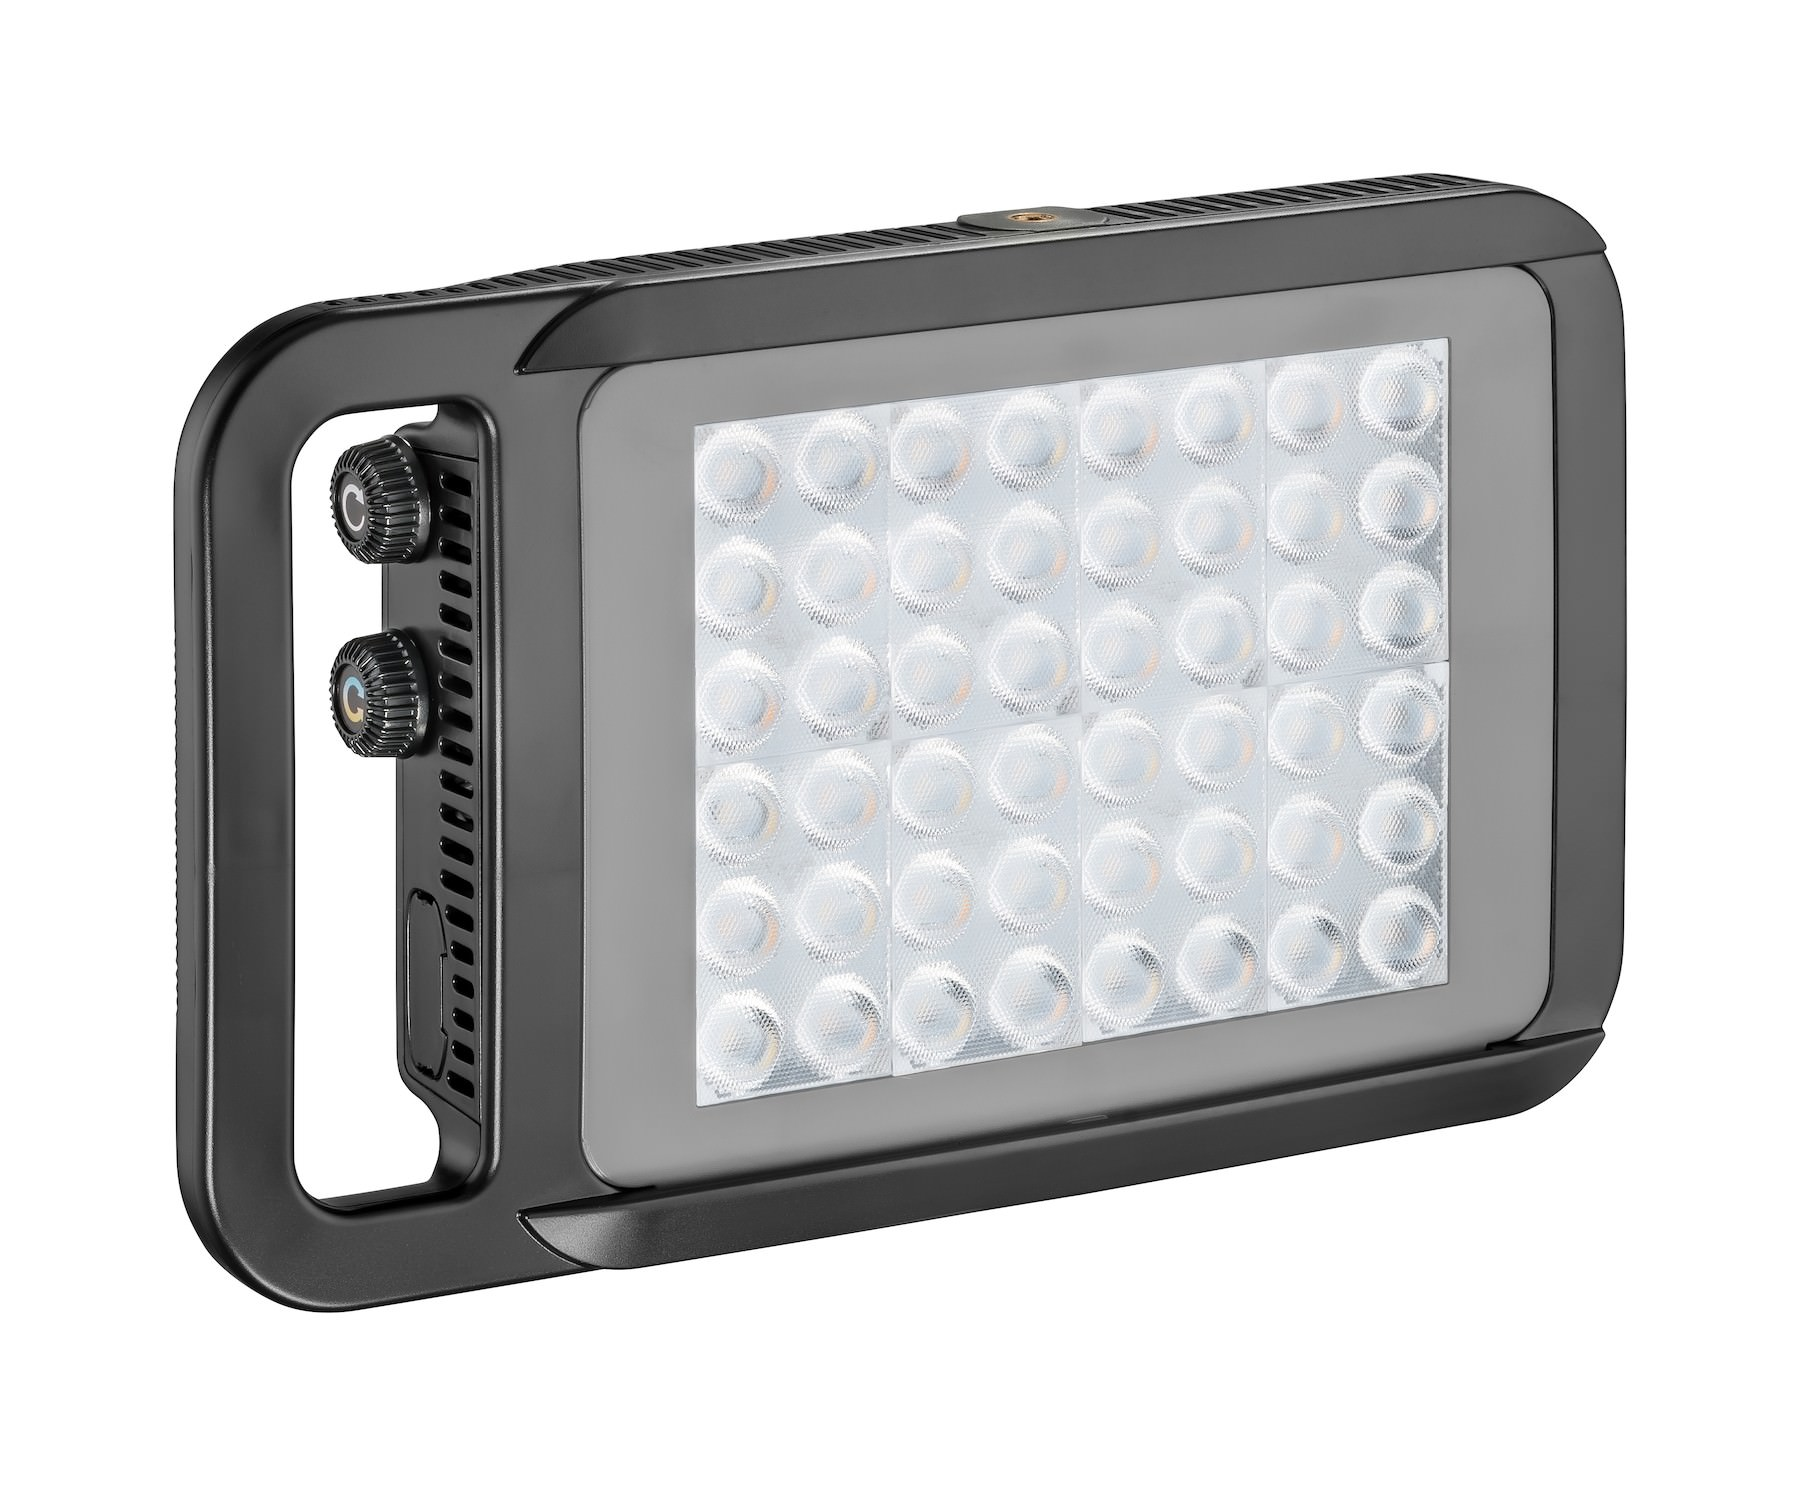 Manfrotto LYKOS Bicolour LED Lighting Panel